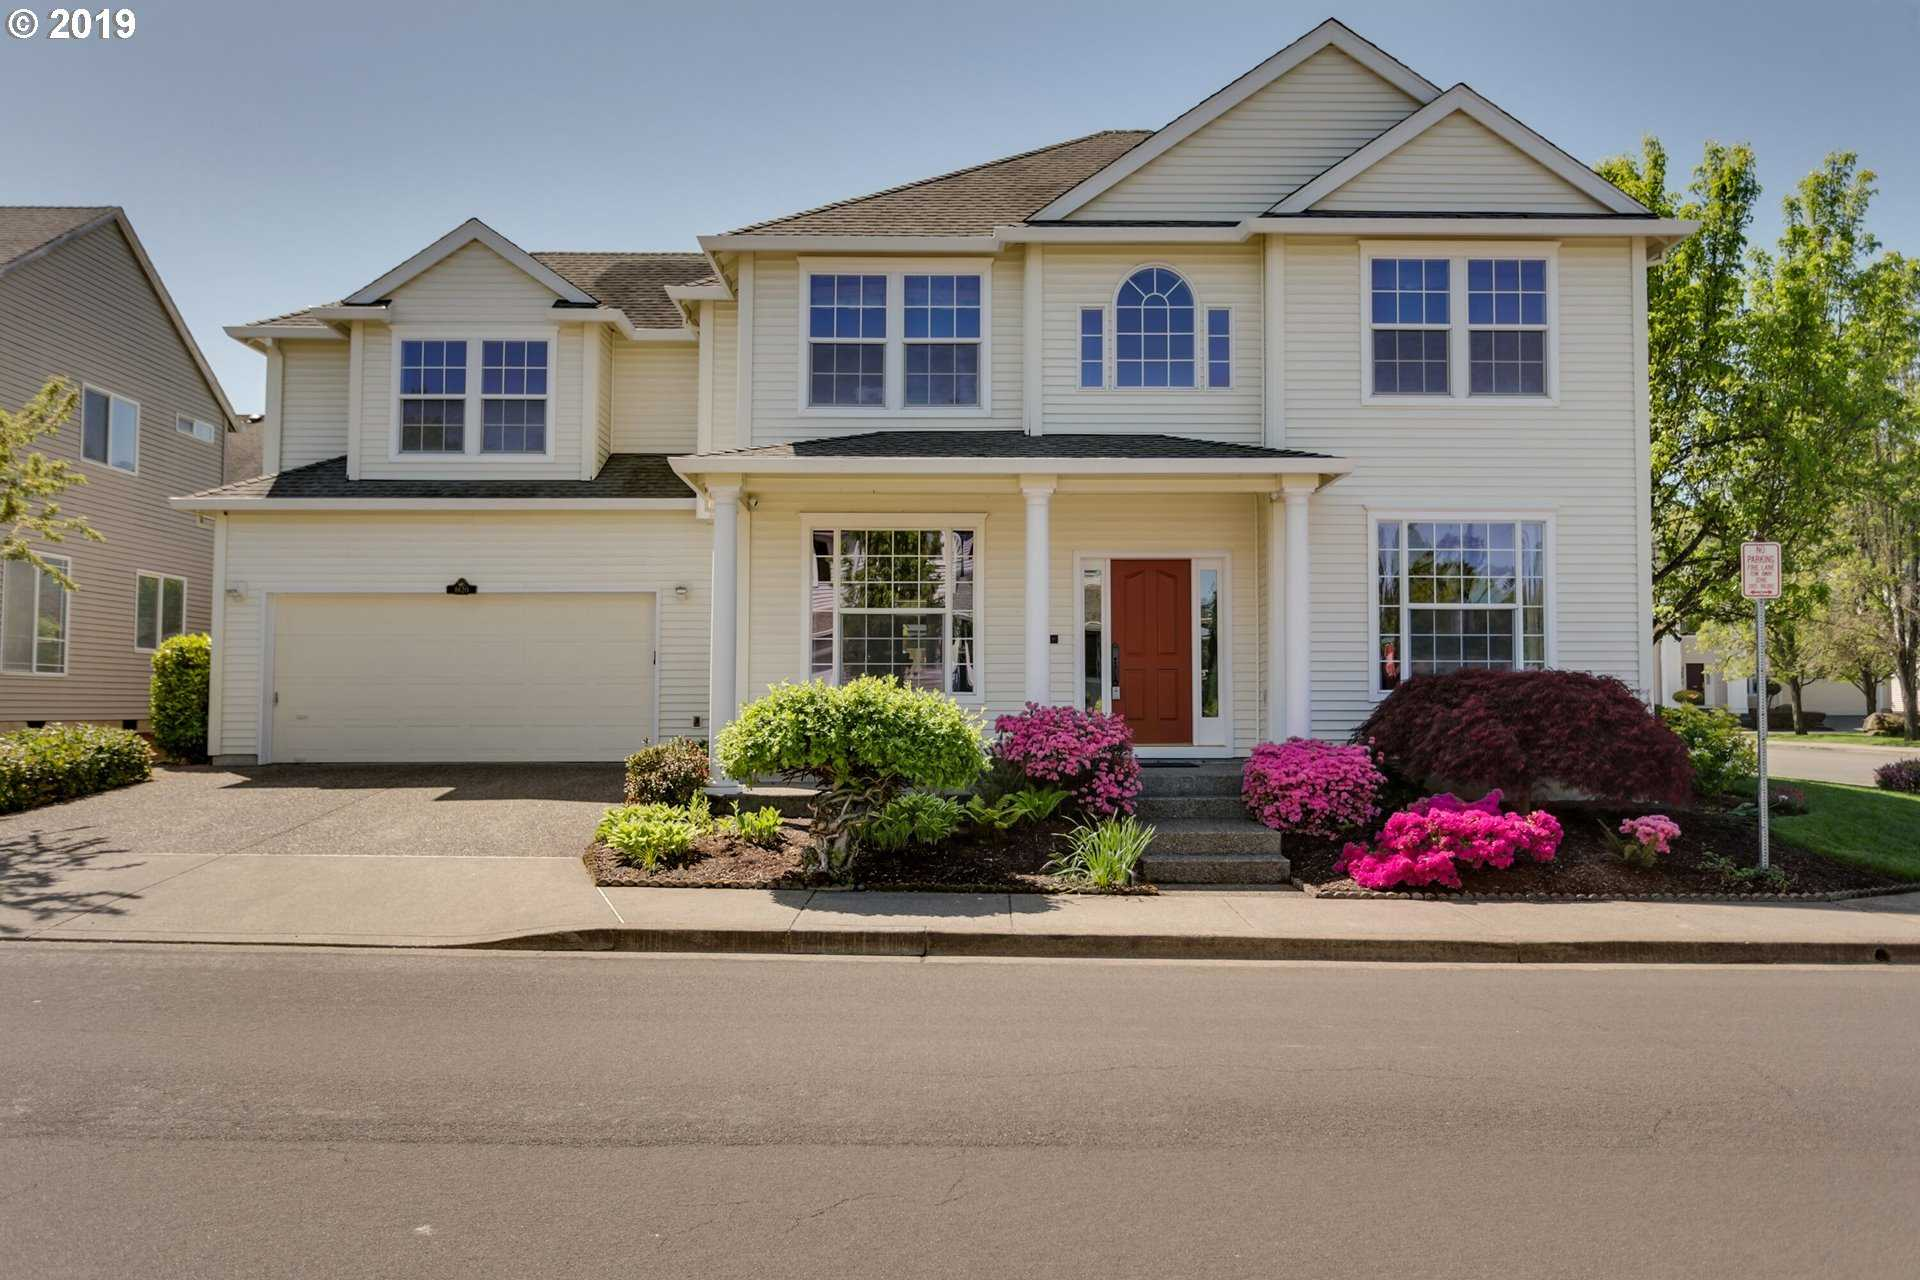 $525,000 - 4Br/3Ba -  for Sale in Applewood, Tigard